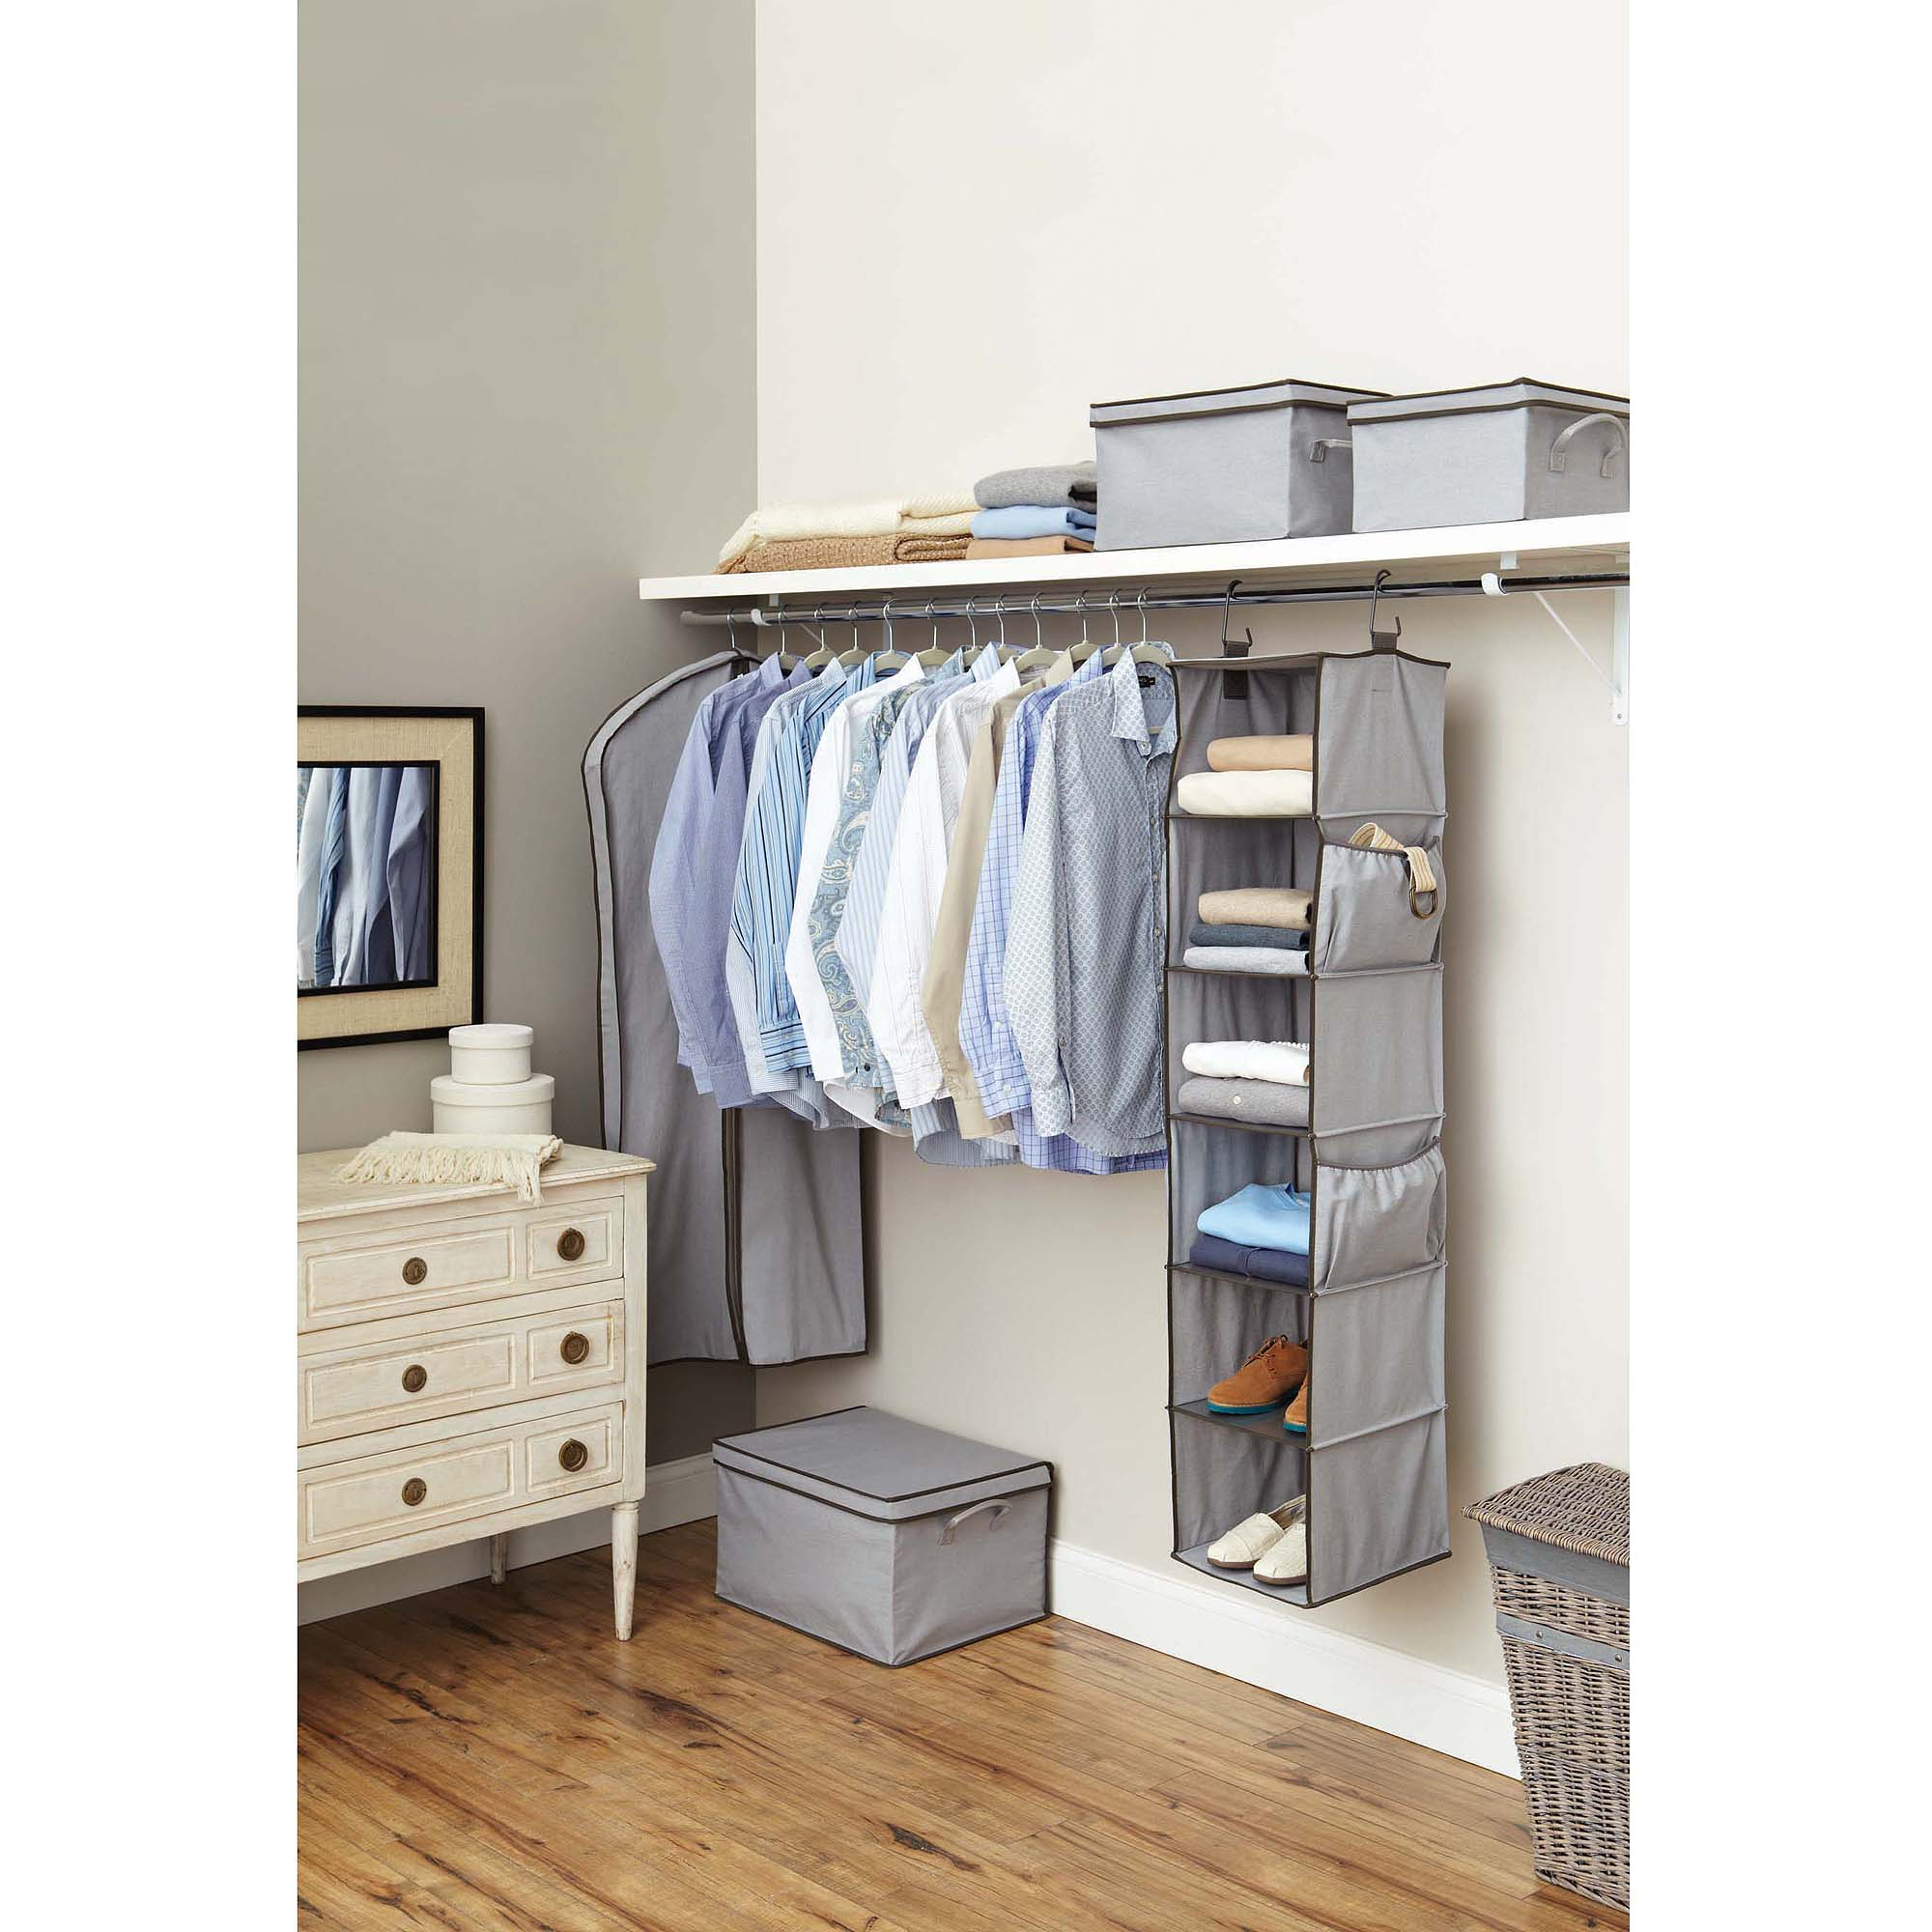 Better Homes and Gardens 6-Shelf Organizer, Grey